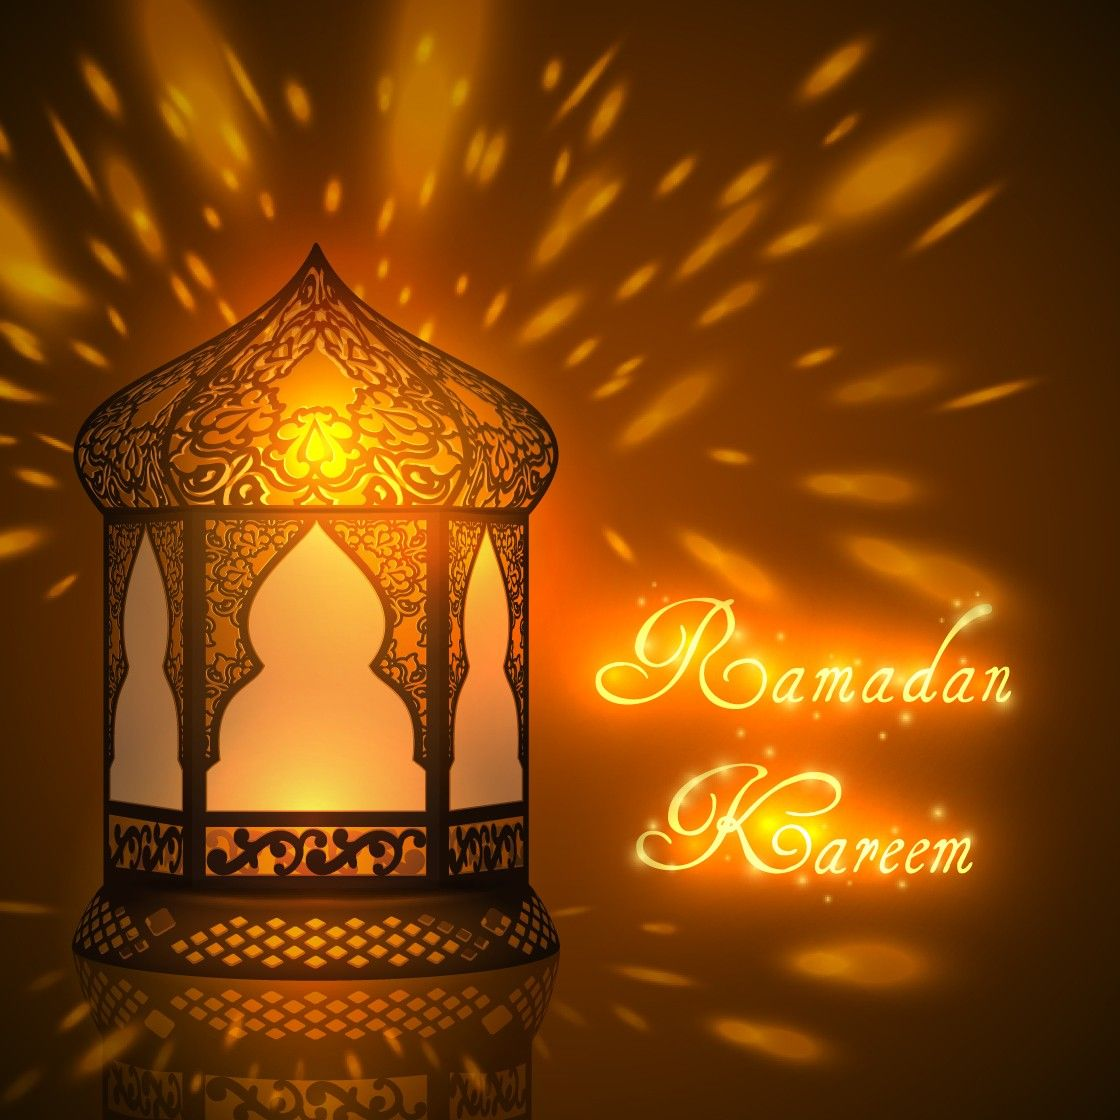 Hd wallpaper ramzan mubarak - Ramadan Mubarak Hd Wallpapers 3